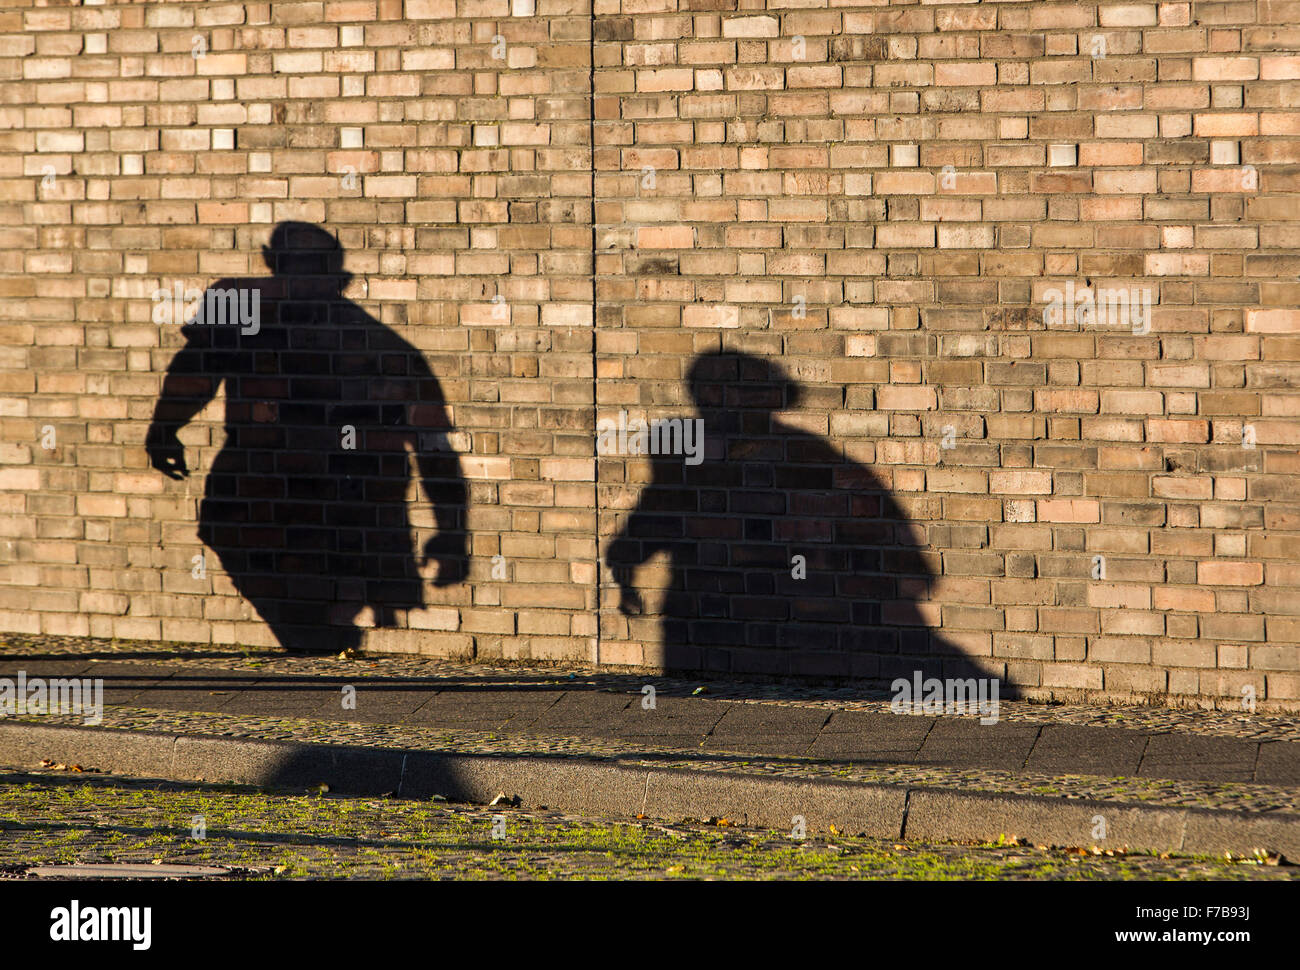 Shadow of 2 Persons, man, woman, on a brick wall - Stock Image